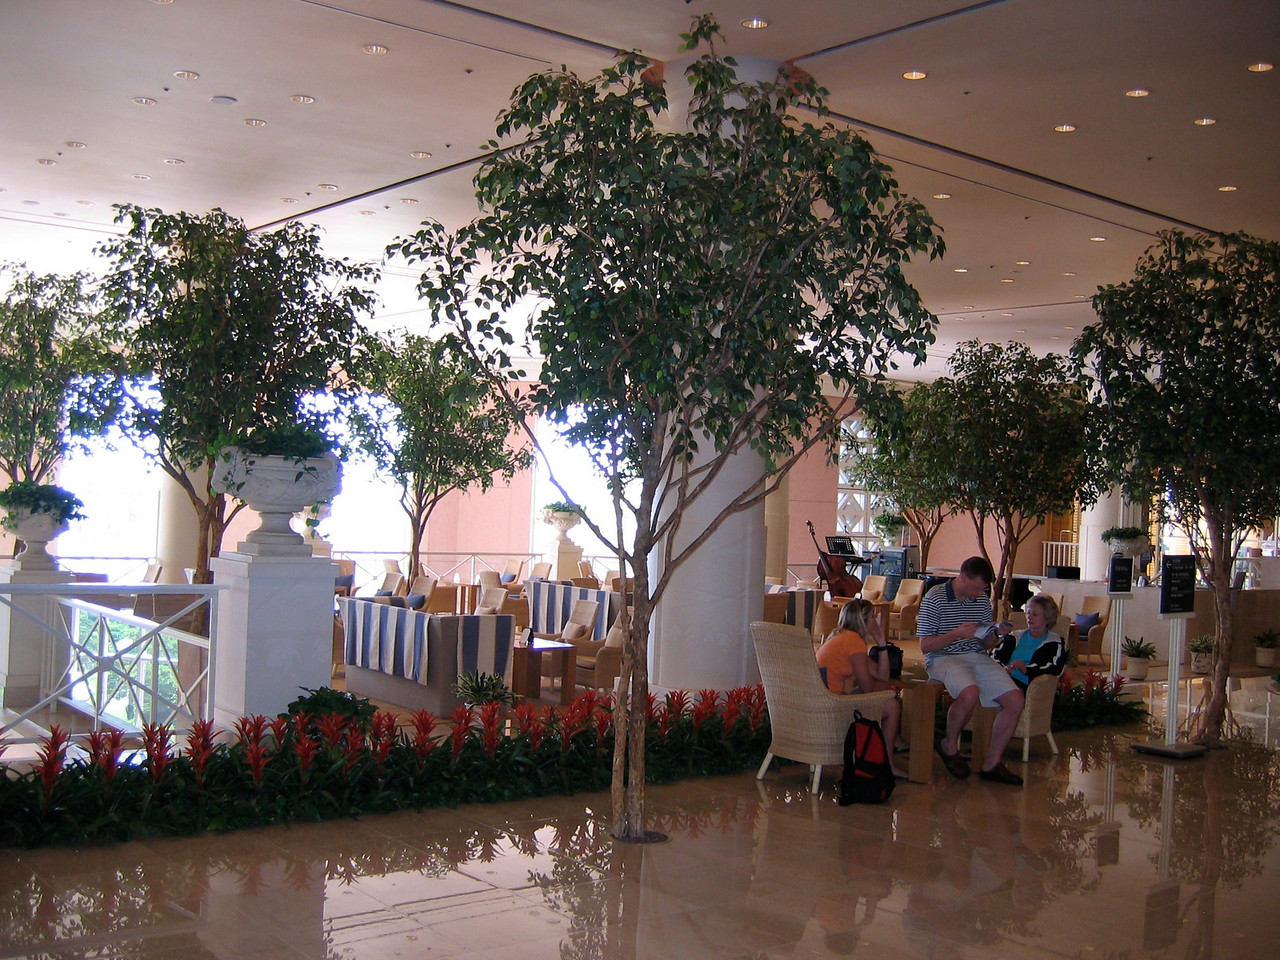 Lobby area of the Shilla Jeju with a small cafe.